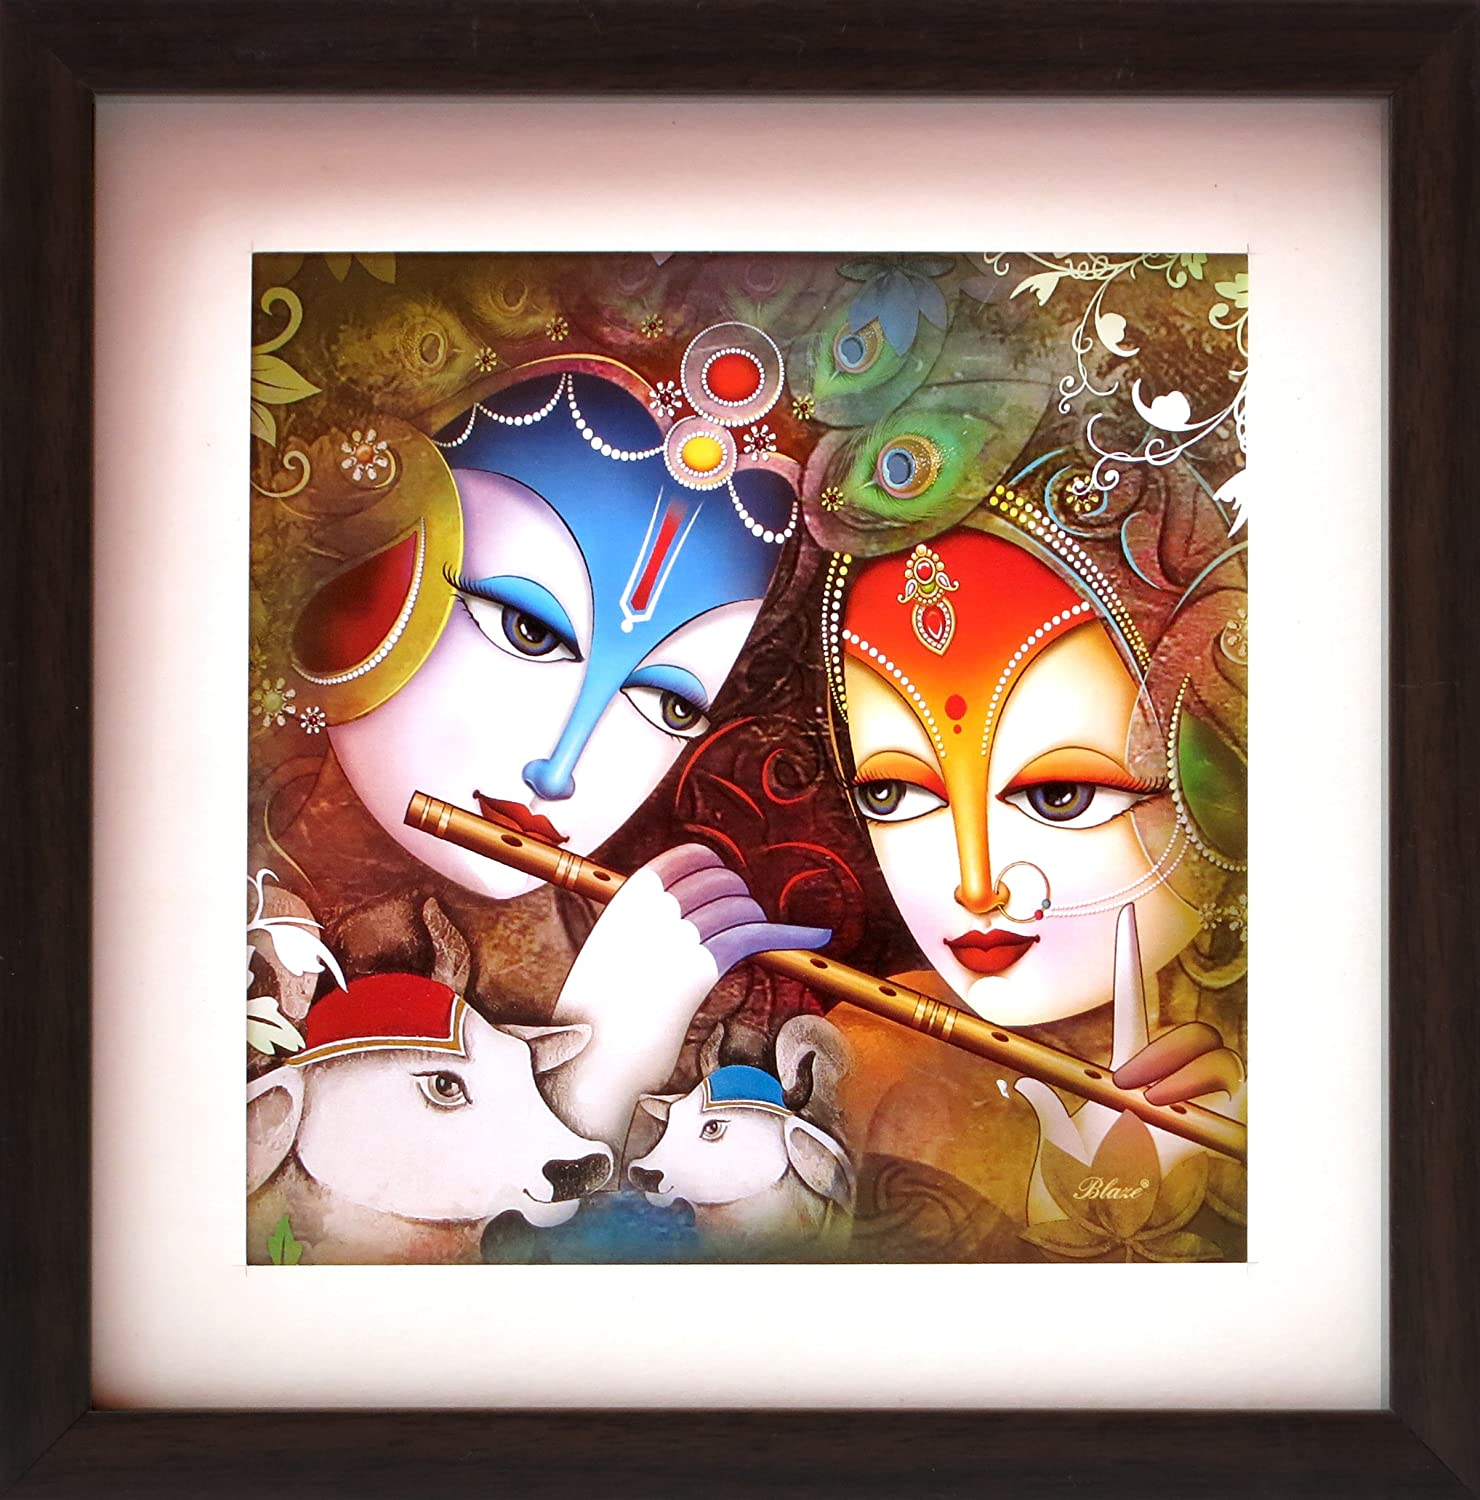 HandicraftStore Lord Radha Krishna Flute Cow, a Decorative Poster Painting Home/Office Décor, a Paper Poster Framing